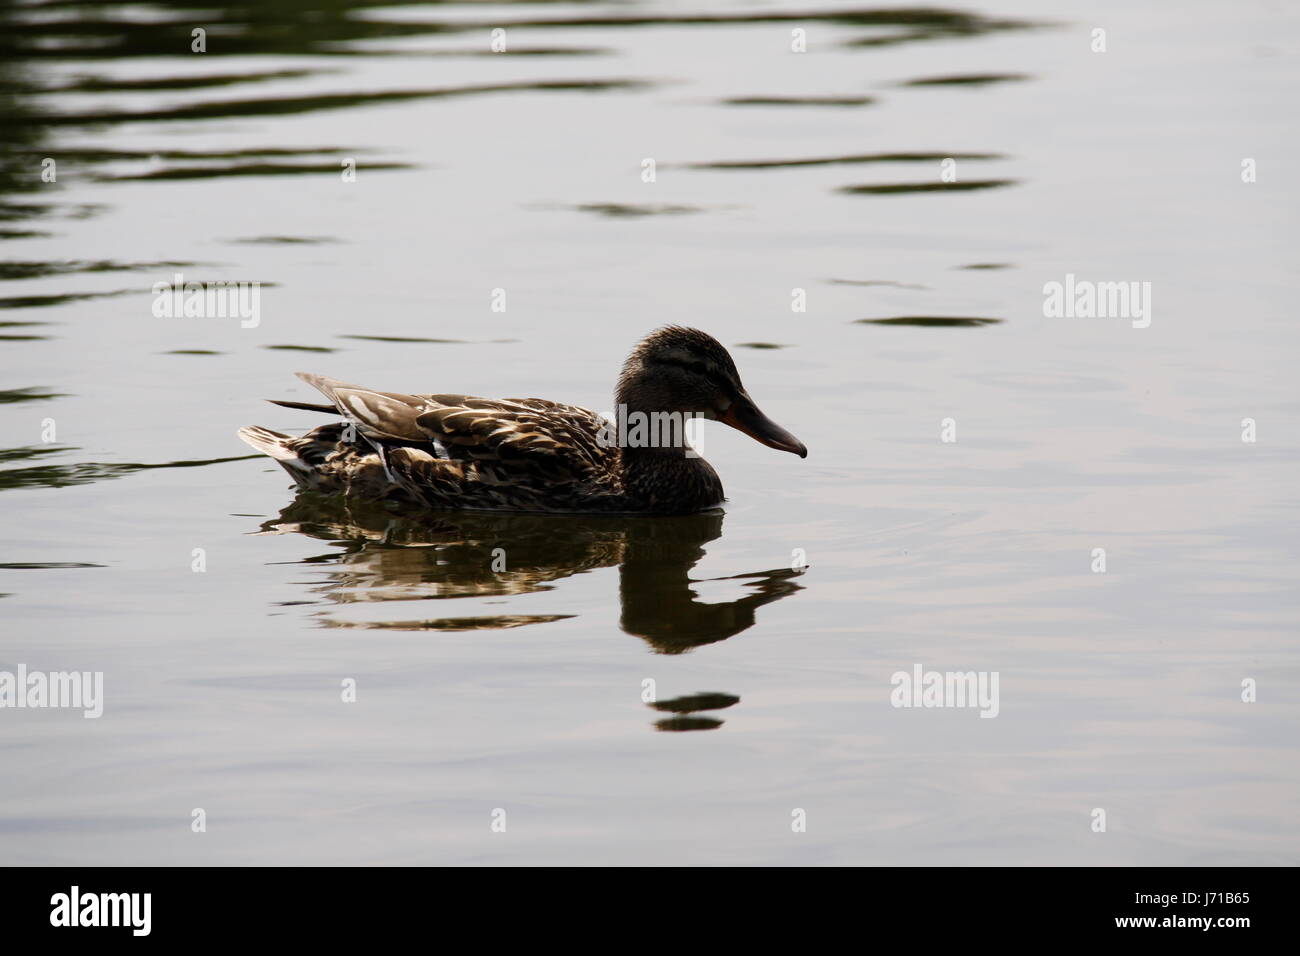 Flugtier stock photos flugtier stock images alamy for Duck pond water